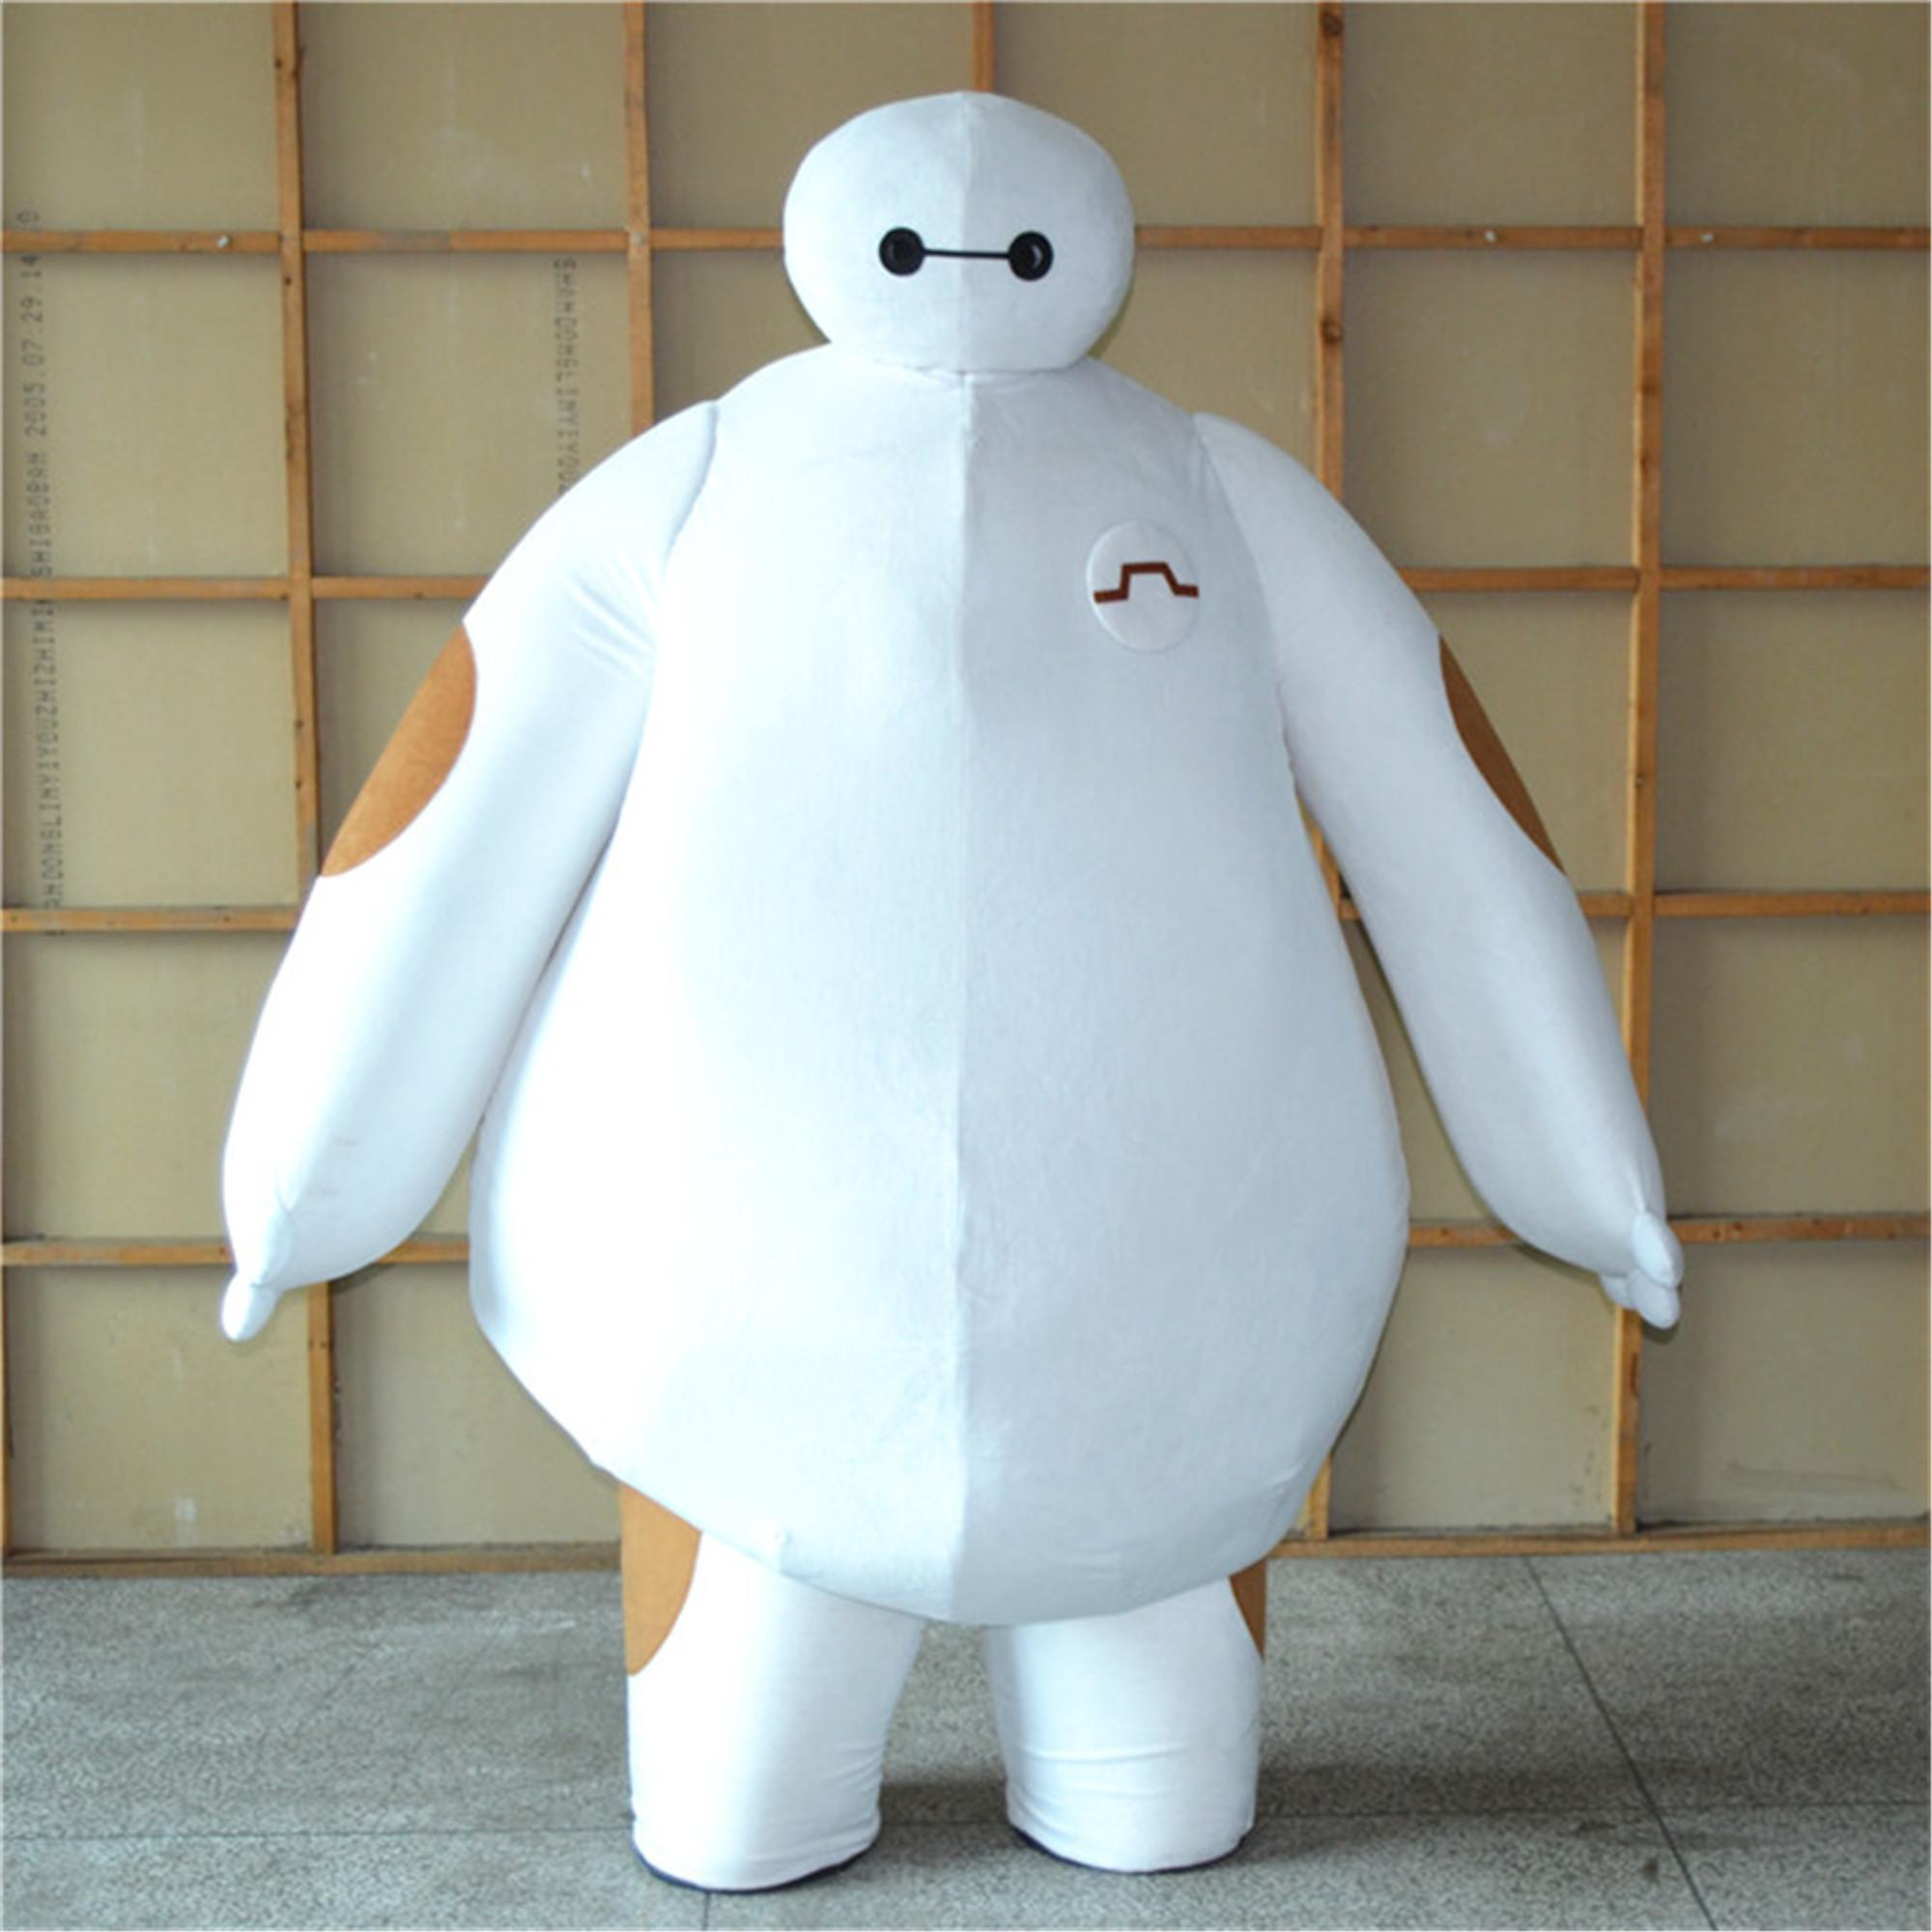 new big hero 6 best quality fancy dress costumes mascot performance animal explorer school mascots character adults costumes for guys - Good Halloween Costumes For Big Guys